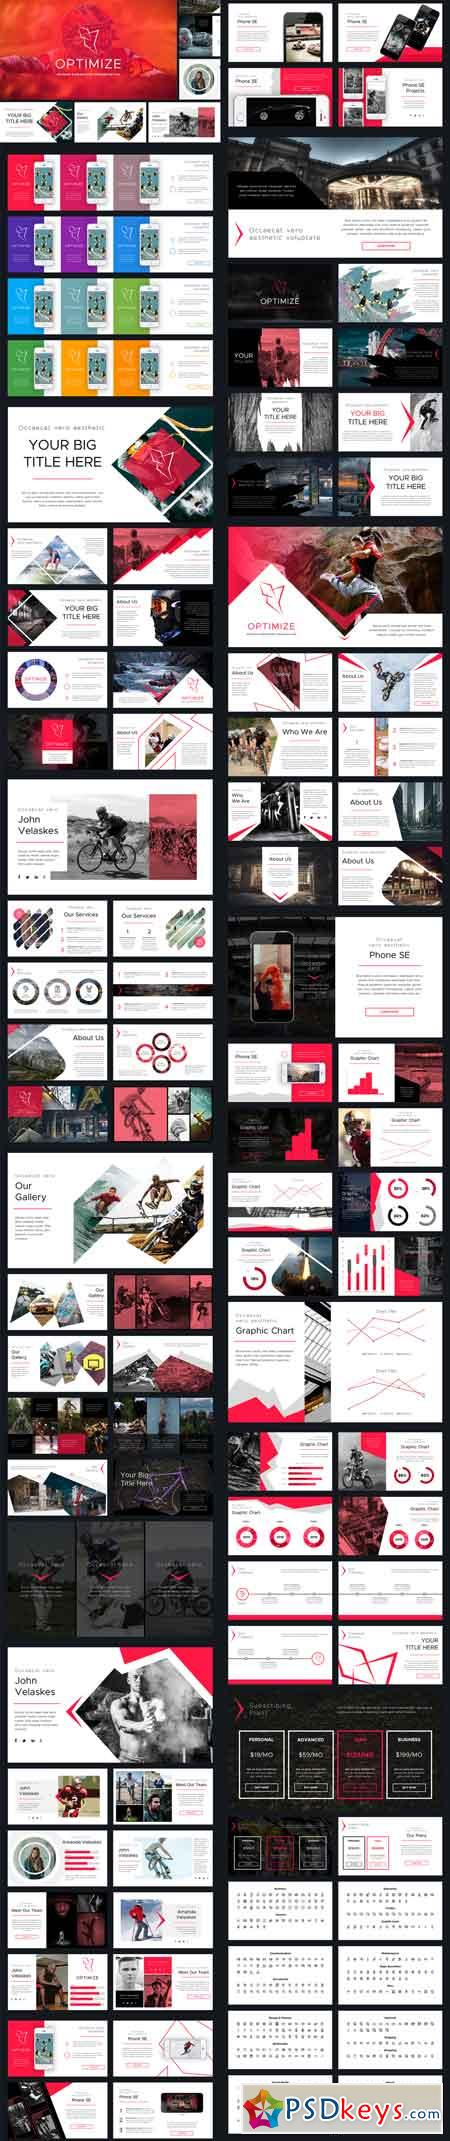 Optimize modern powerpoint template 894607 free download optimize modern powerpoint template 894607 alramifo Gallery